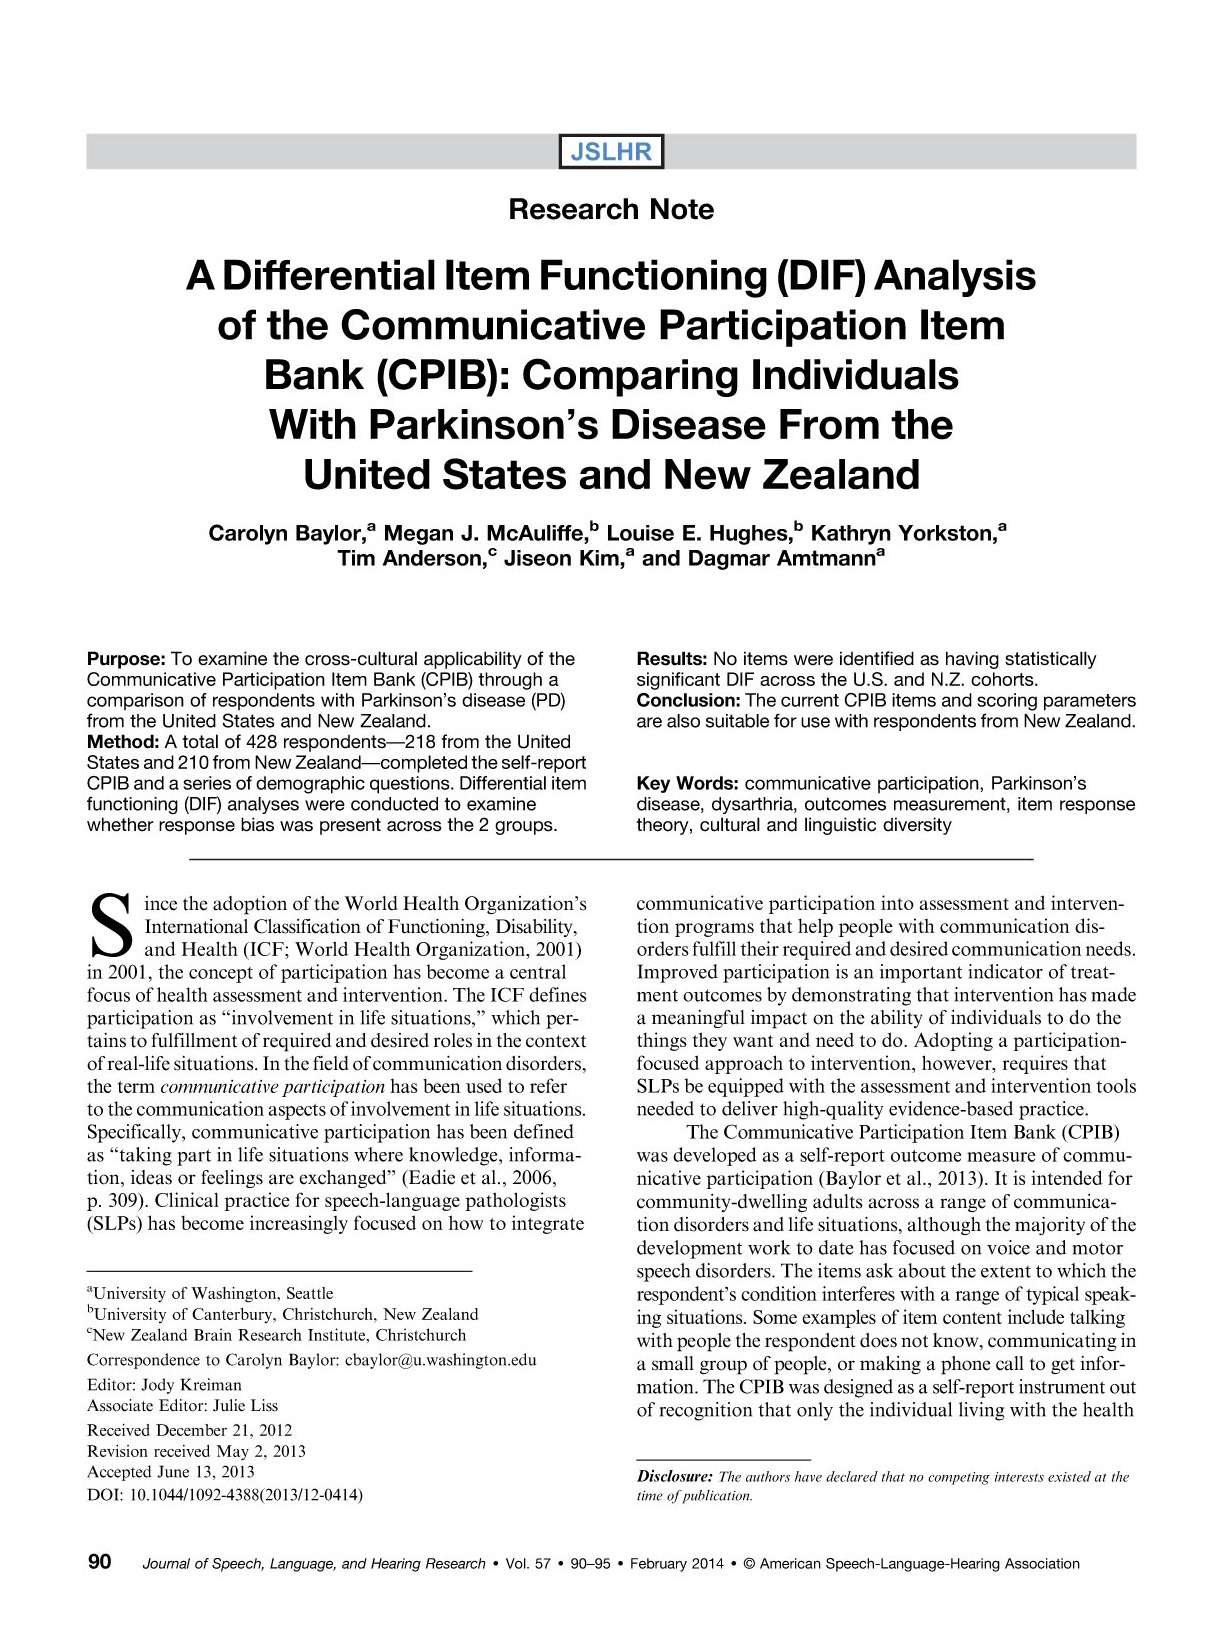 Download A differential item functioning (DIF) analysis of the Communicative Participation Item Bank (CPIB): Comparing individuals with Parkinson's disease from the United States and New Zealand.